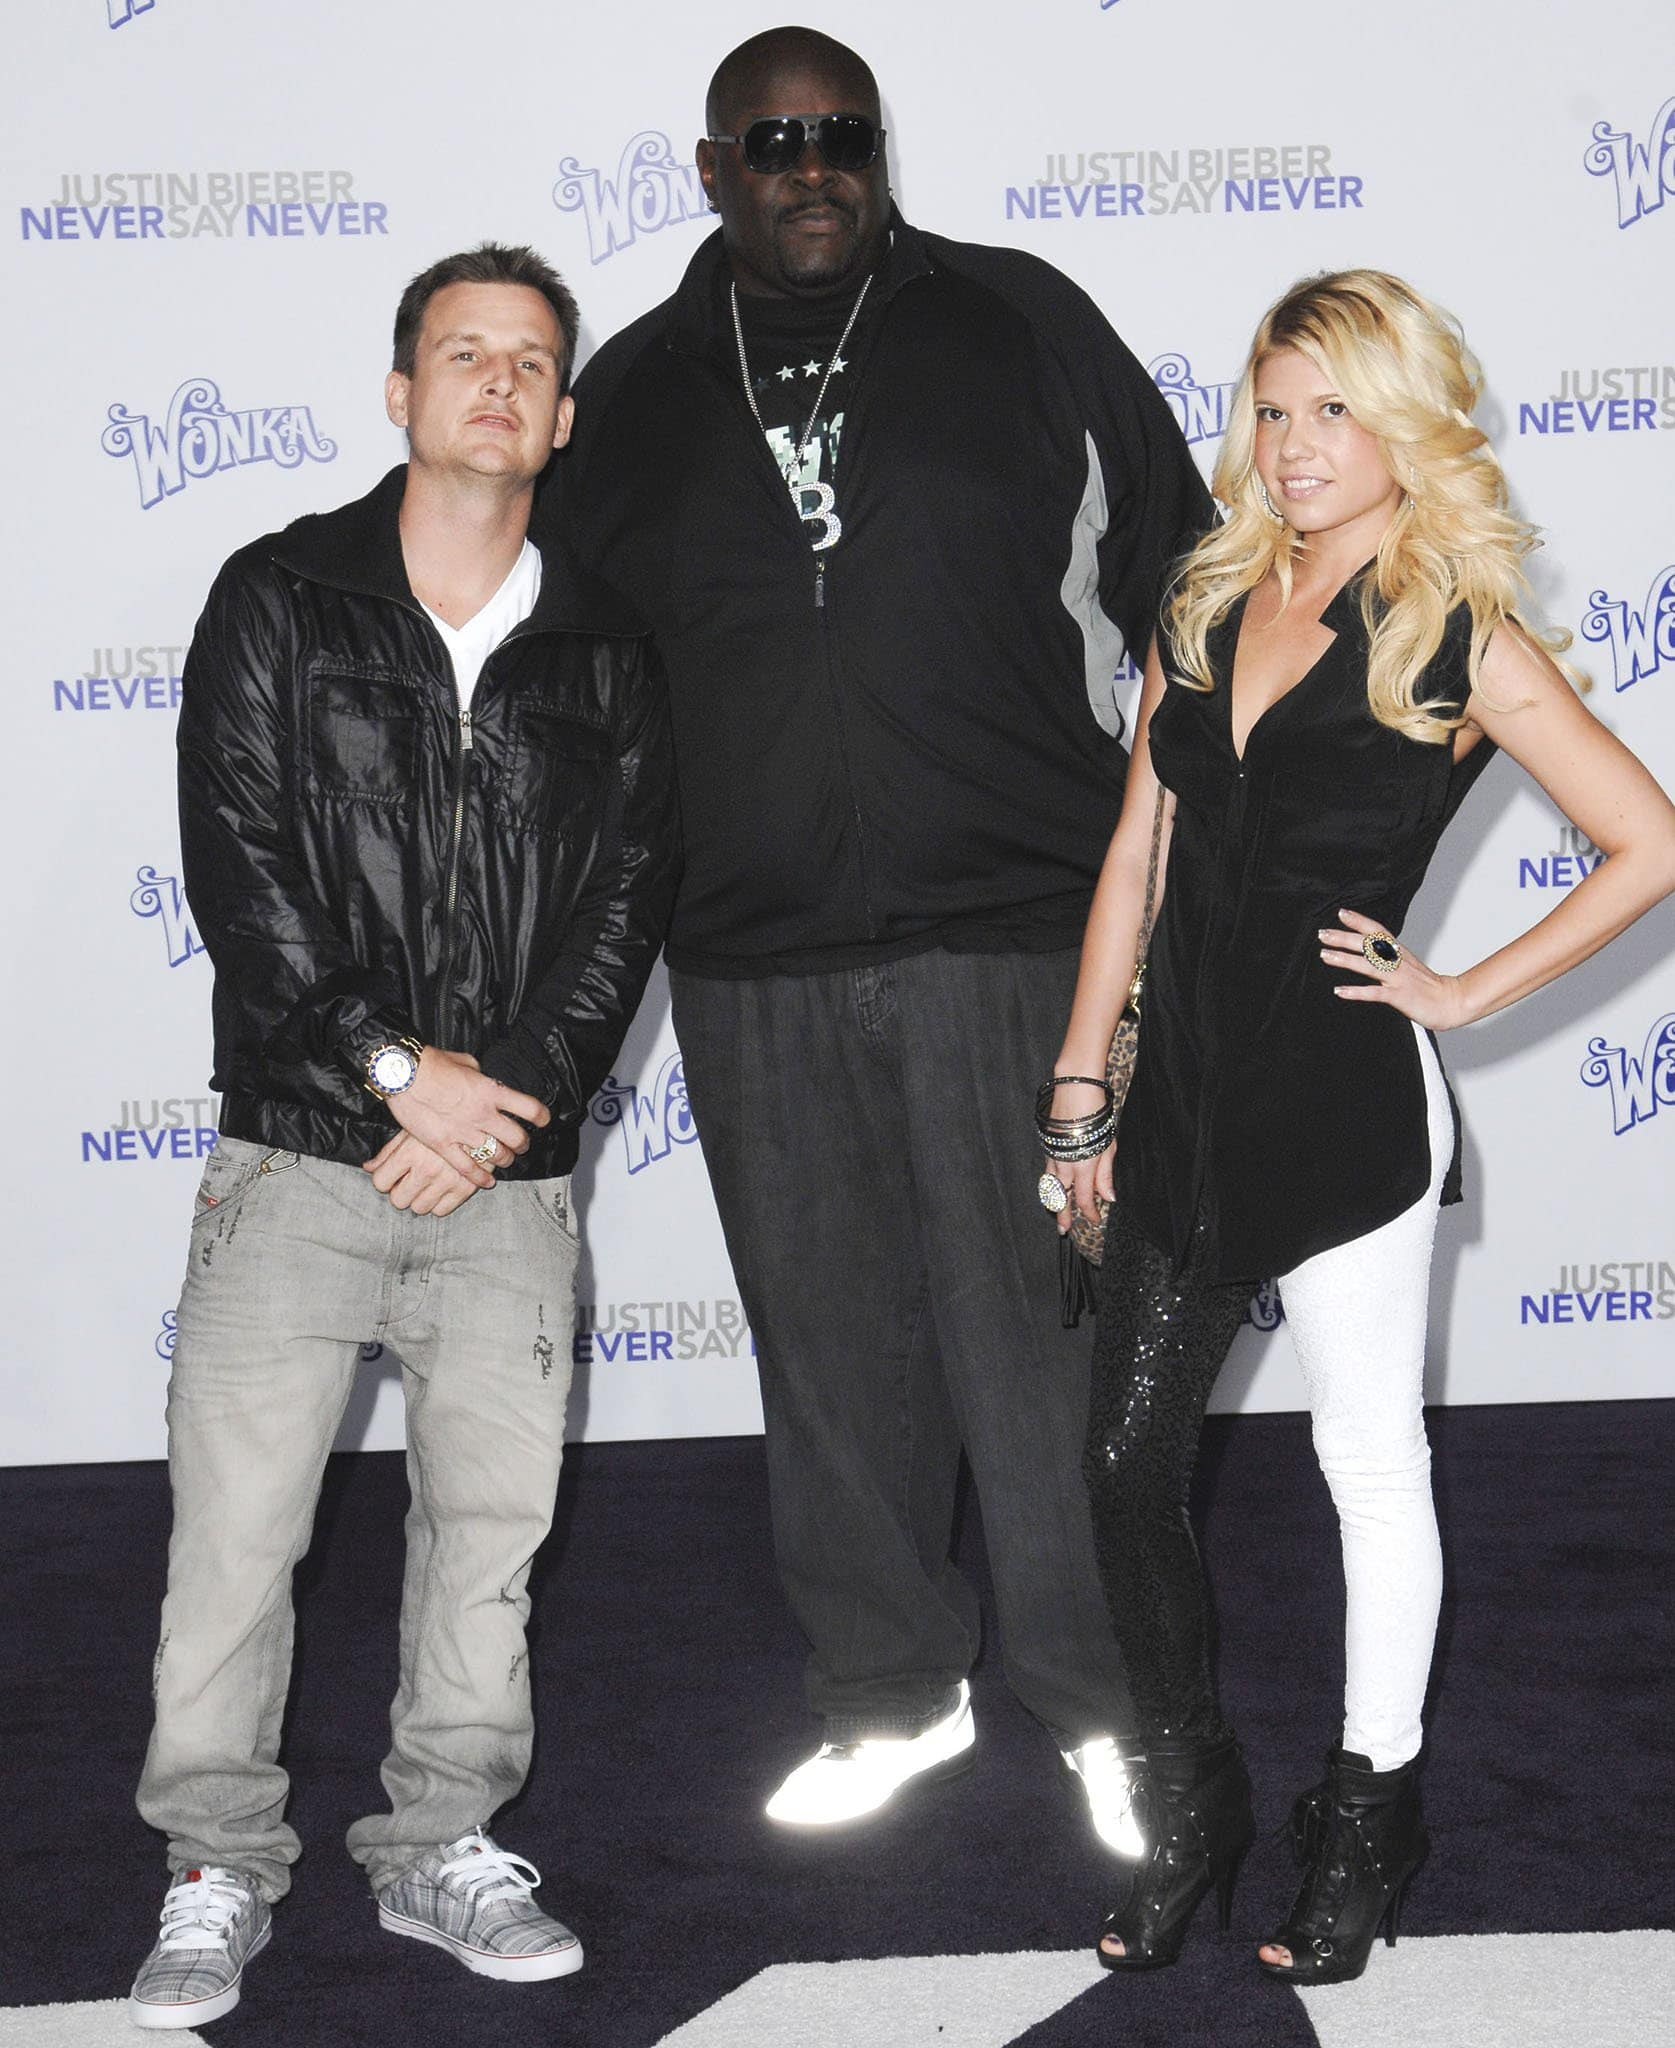 """Rob Dyrdek with the late Christopher Boykin and Chanel West Coast at the Los Angeles Premiere of """"Justin Bieber: Never Say Never"""" on February 8, 2011"""